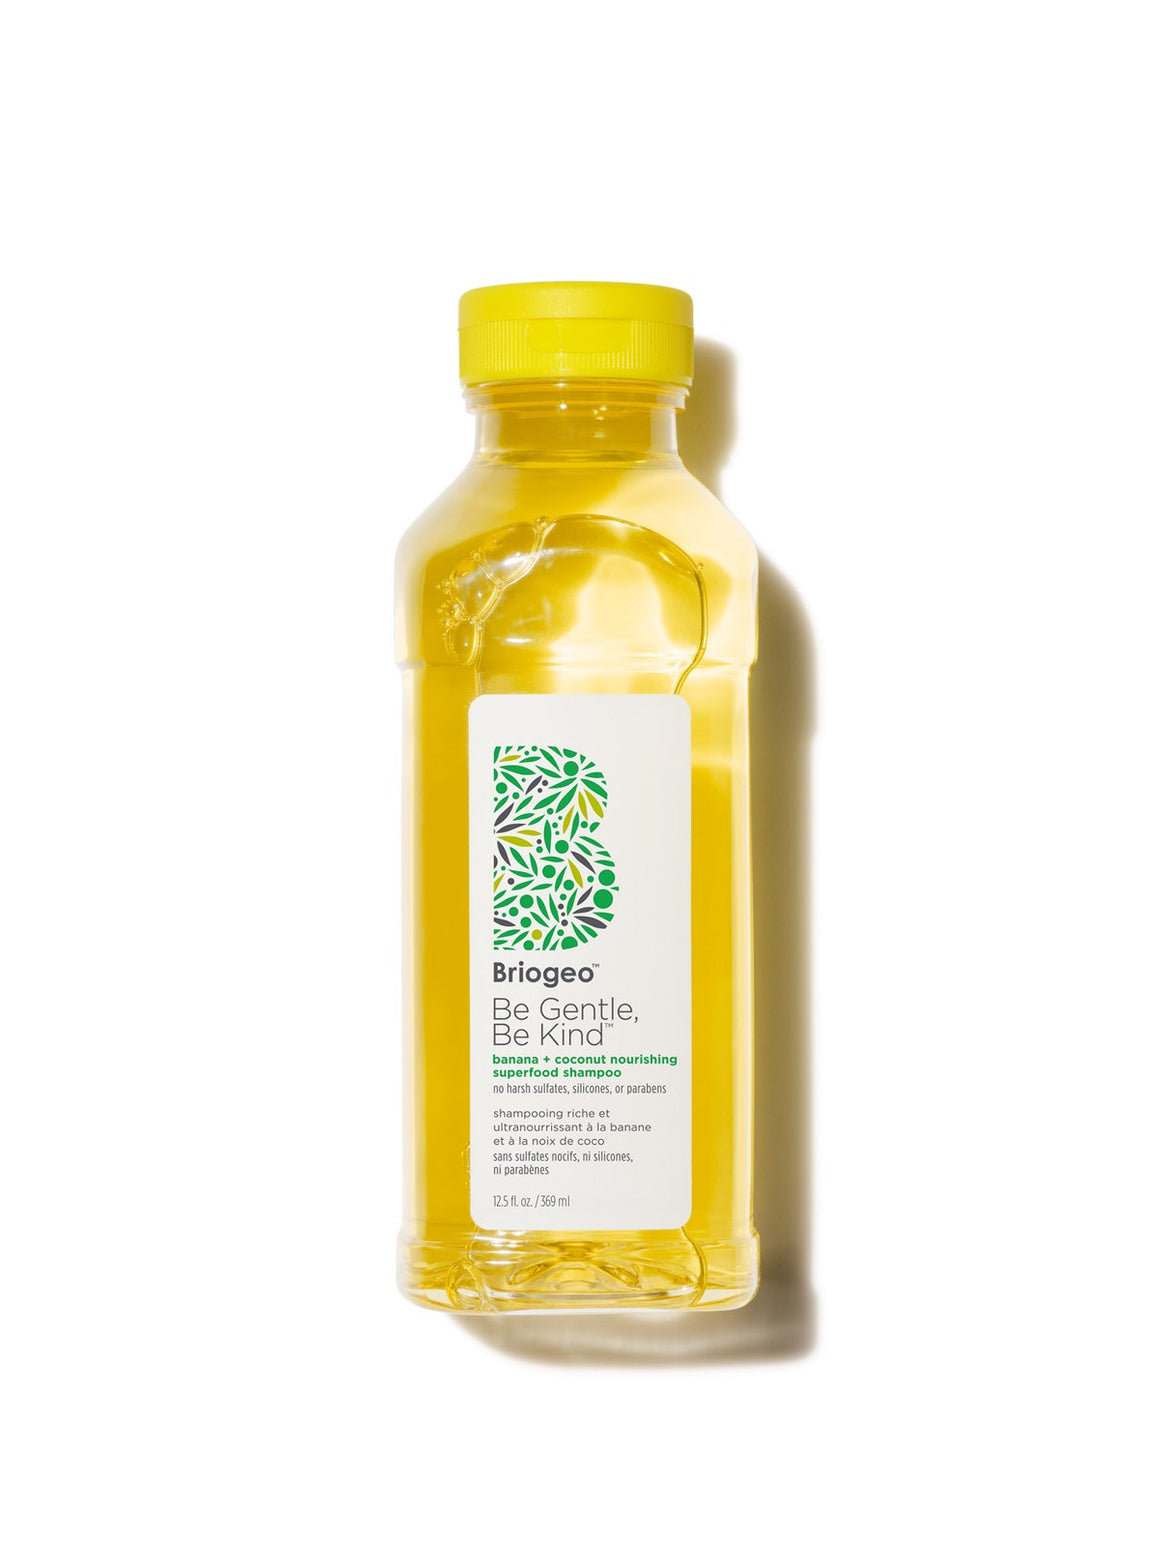 Briogeo Be Gentle Be Kind Banana + Coconut Superfood Shampoo